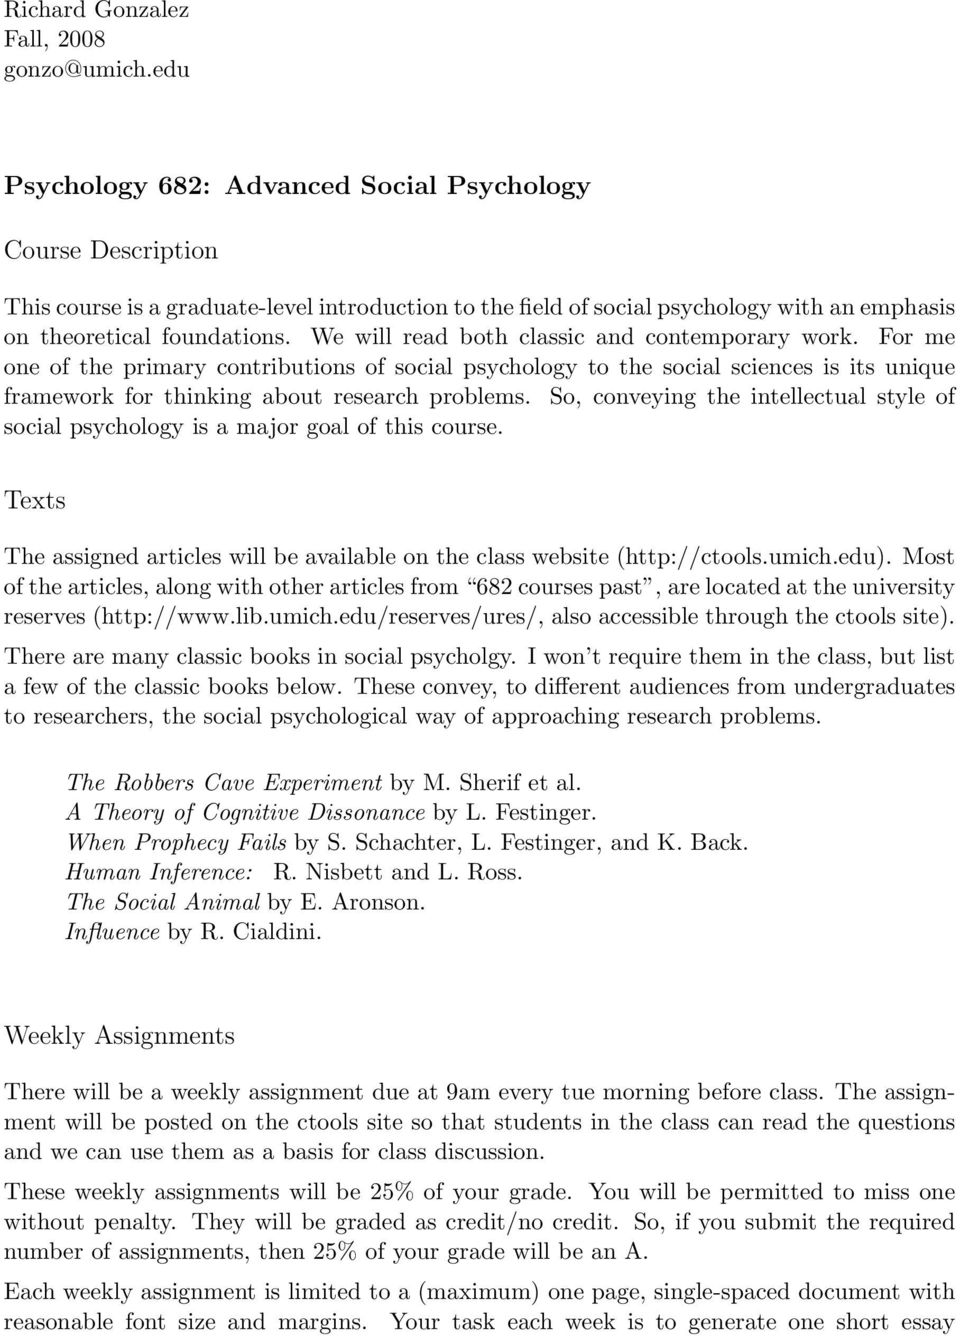 We will read both classic and contemporary work. For me one of the primary contributions of social psychology to the social sciences is its unique framework for thinking about research problems.